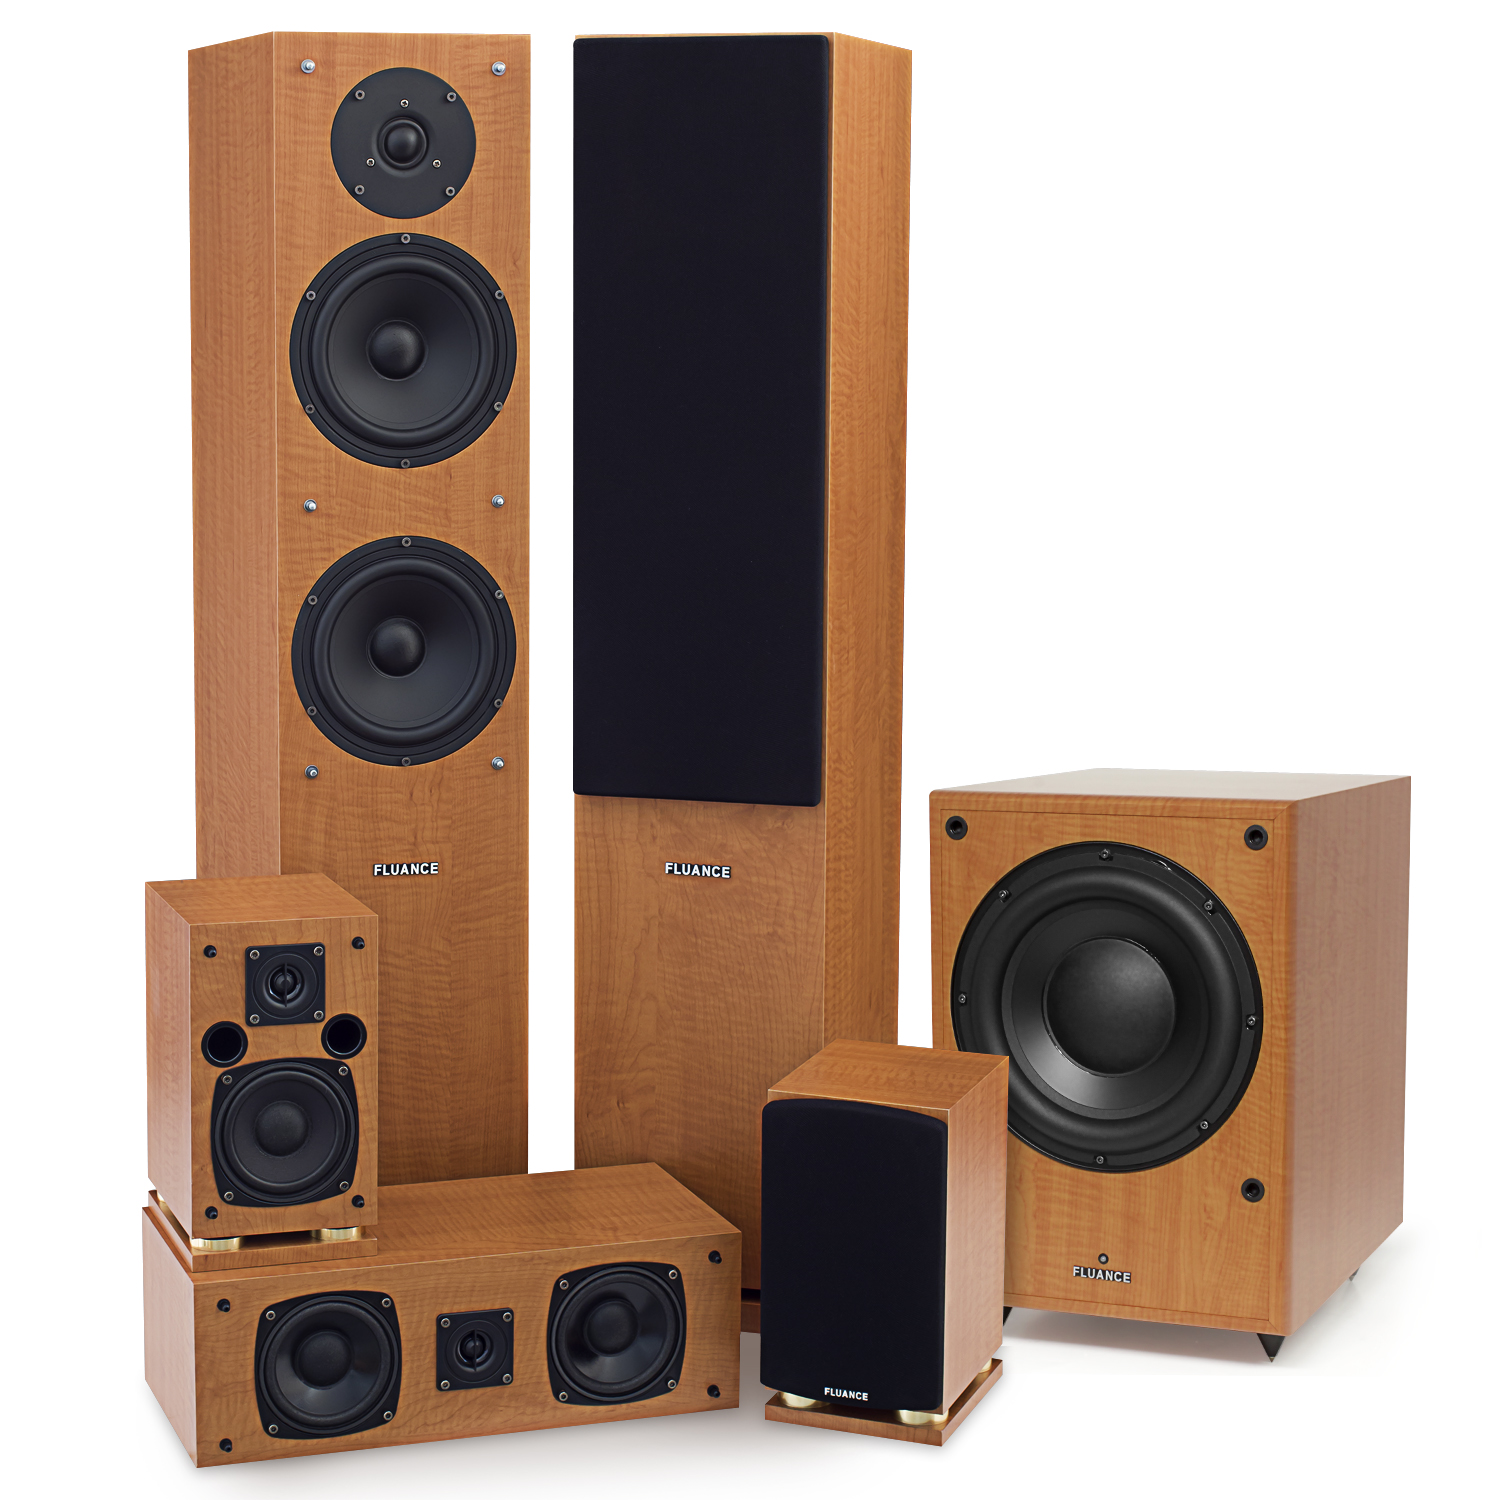 Fluance SX Series 5.1 Surround Sound Home Theater Speaker System